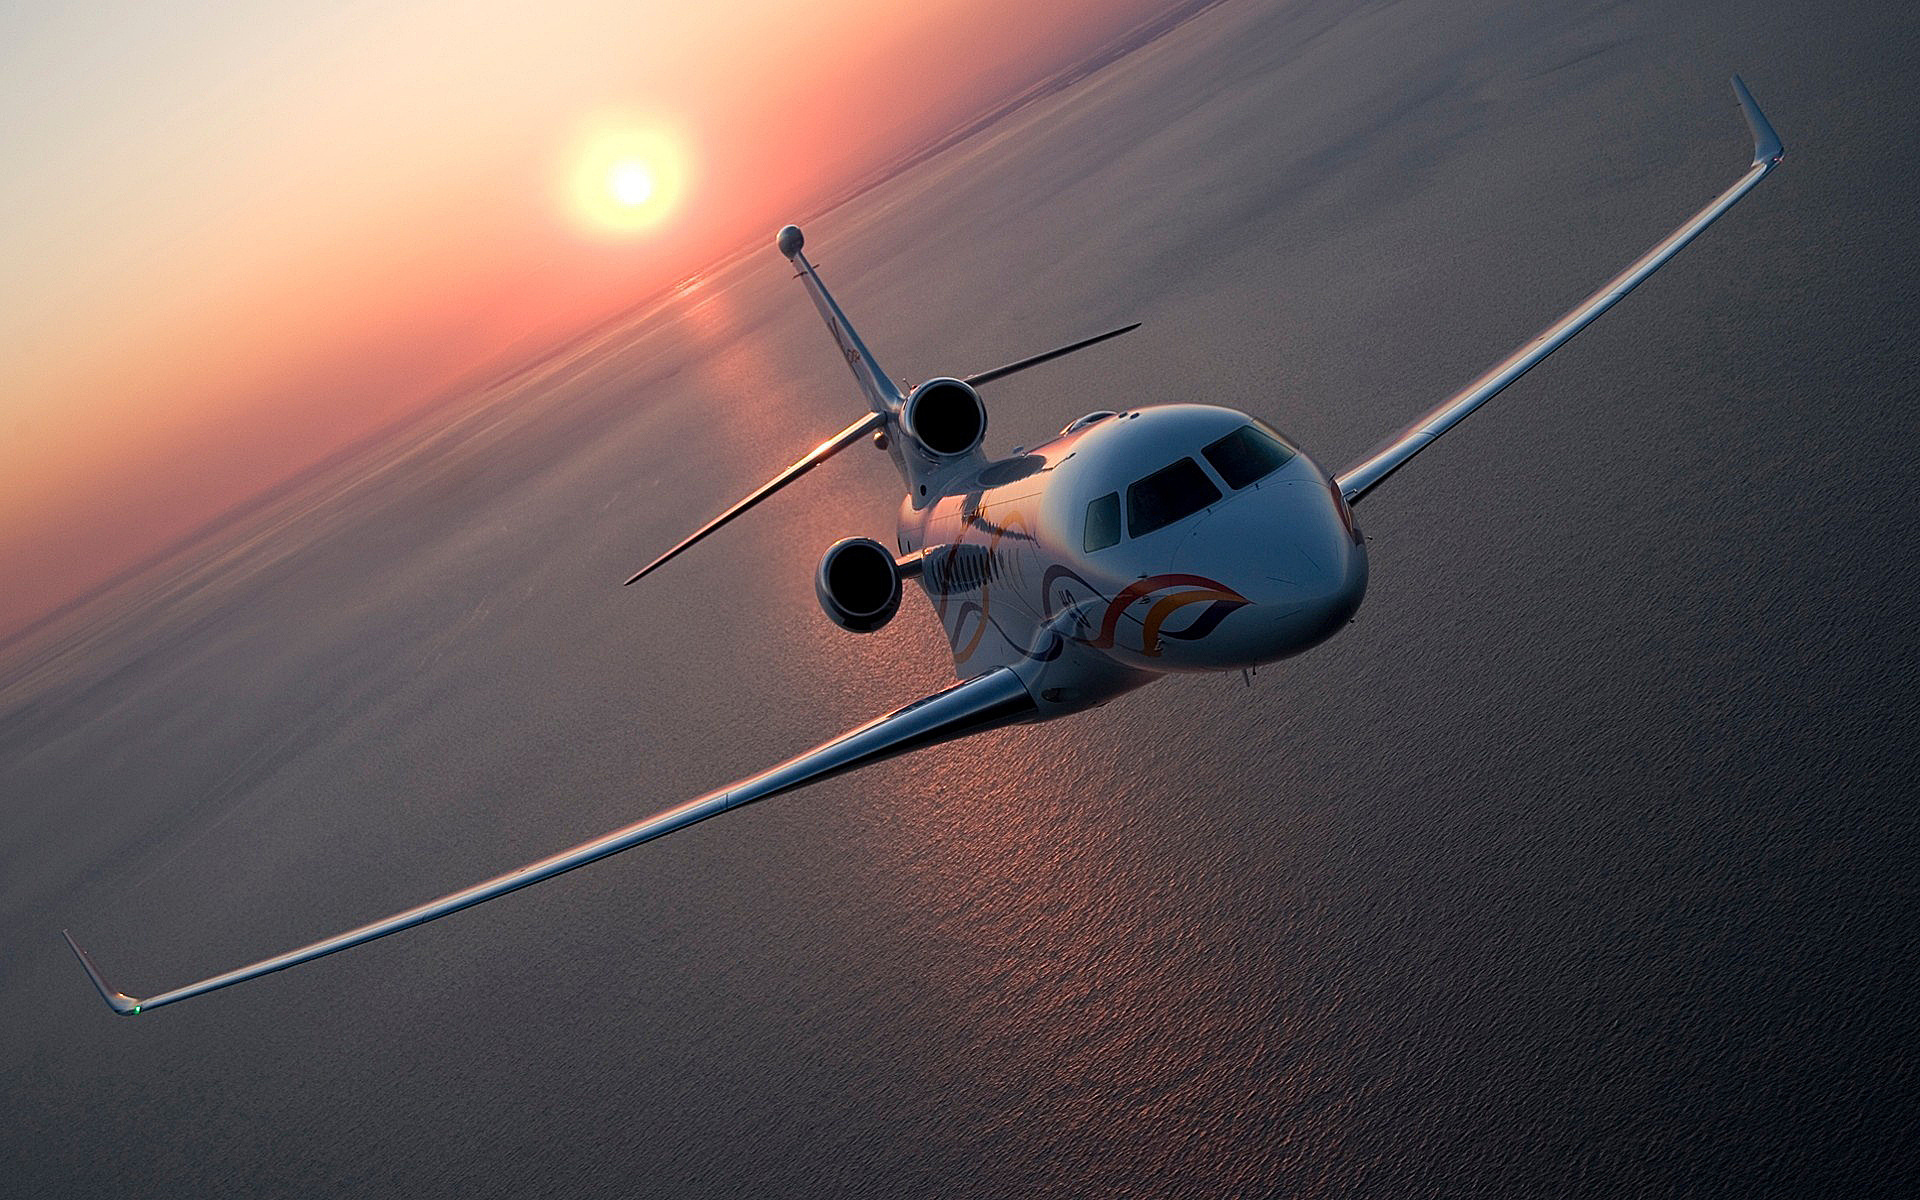 1 Dassault Falcon 7X HD Wallpapers | Backgrounds ...